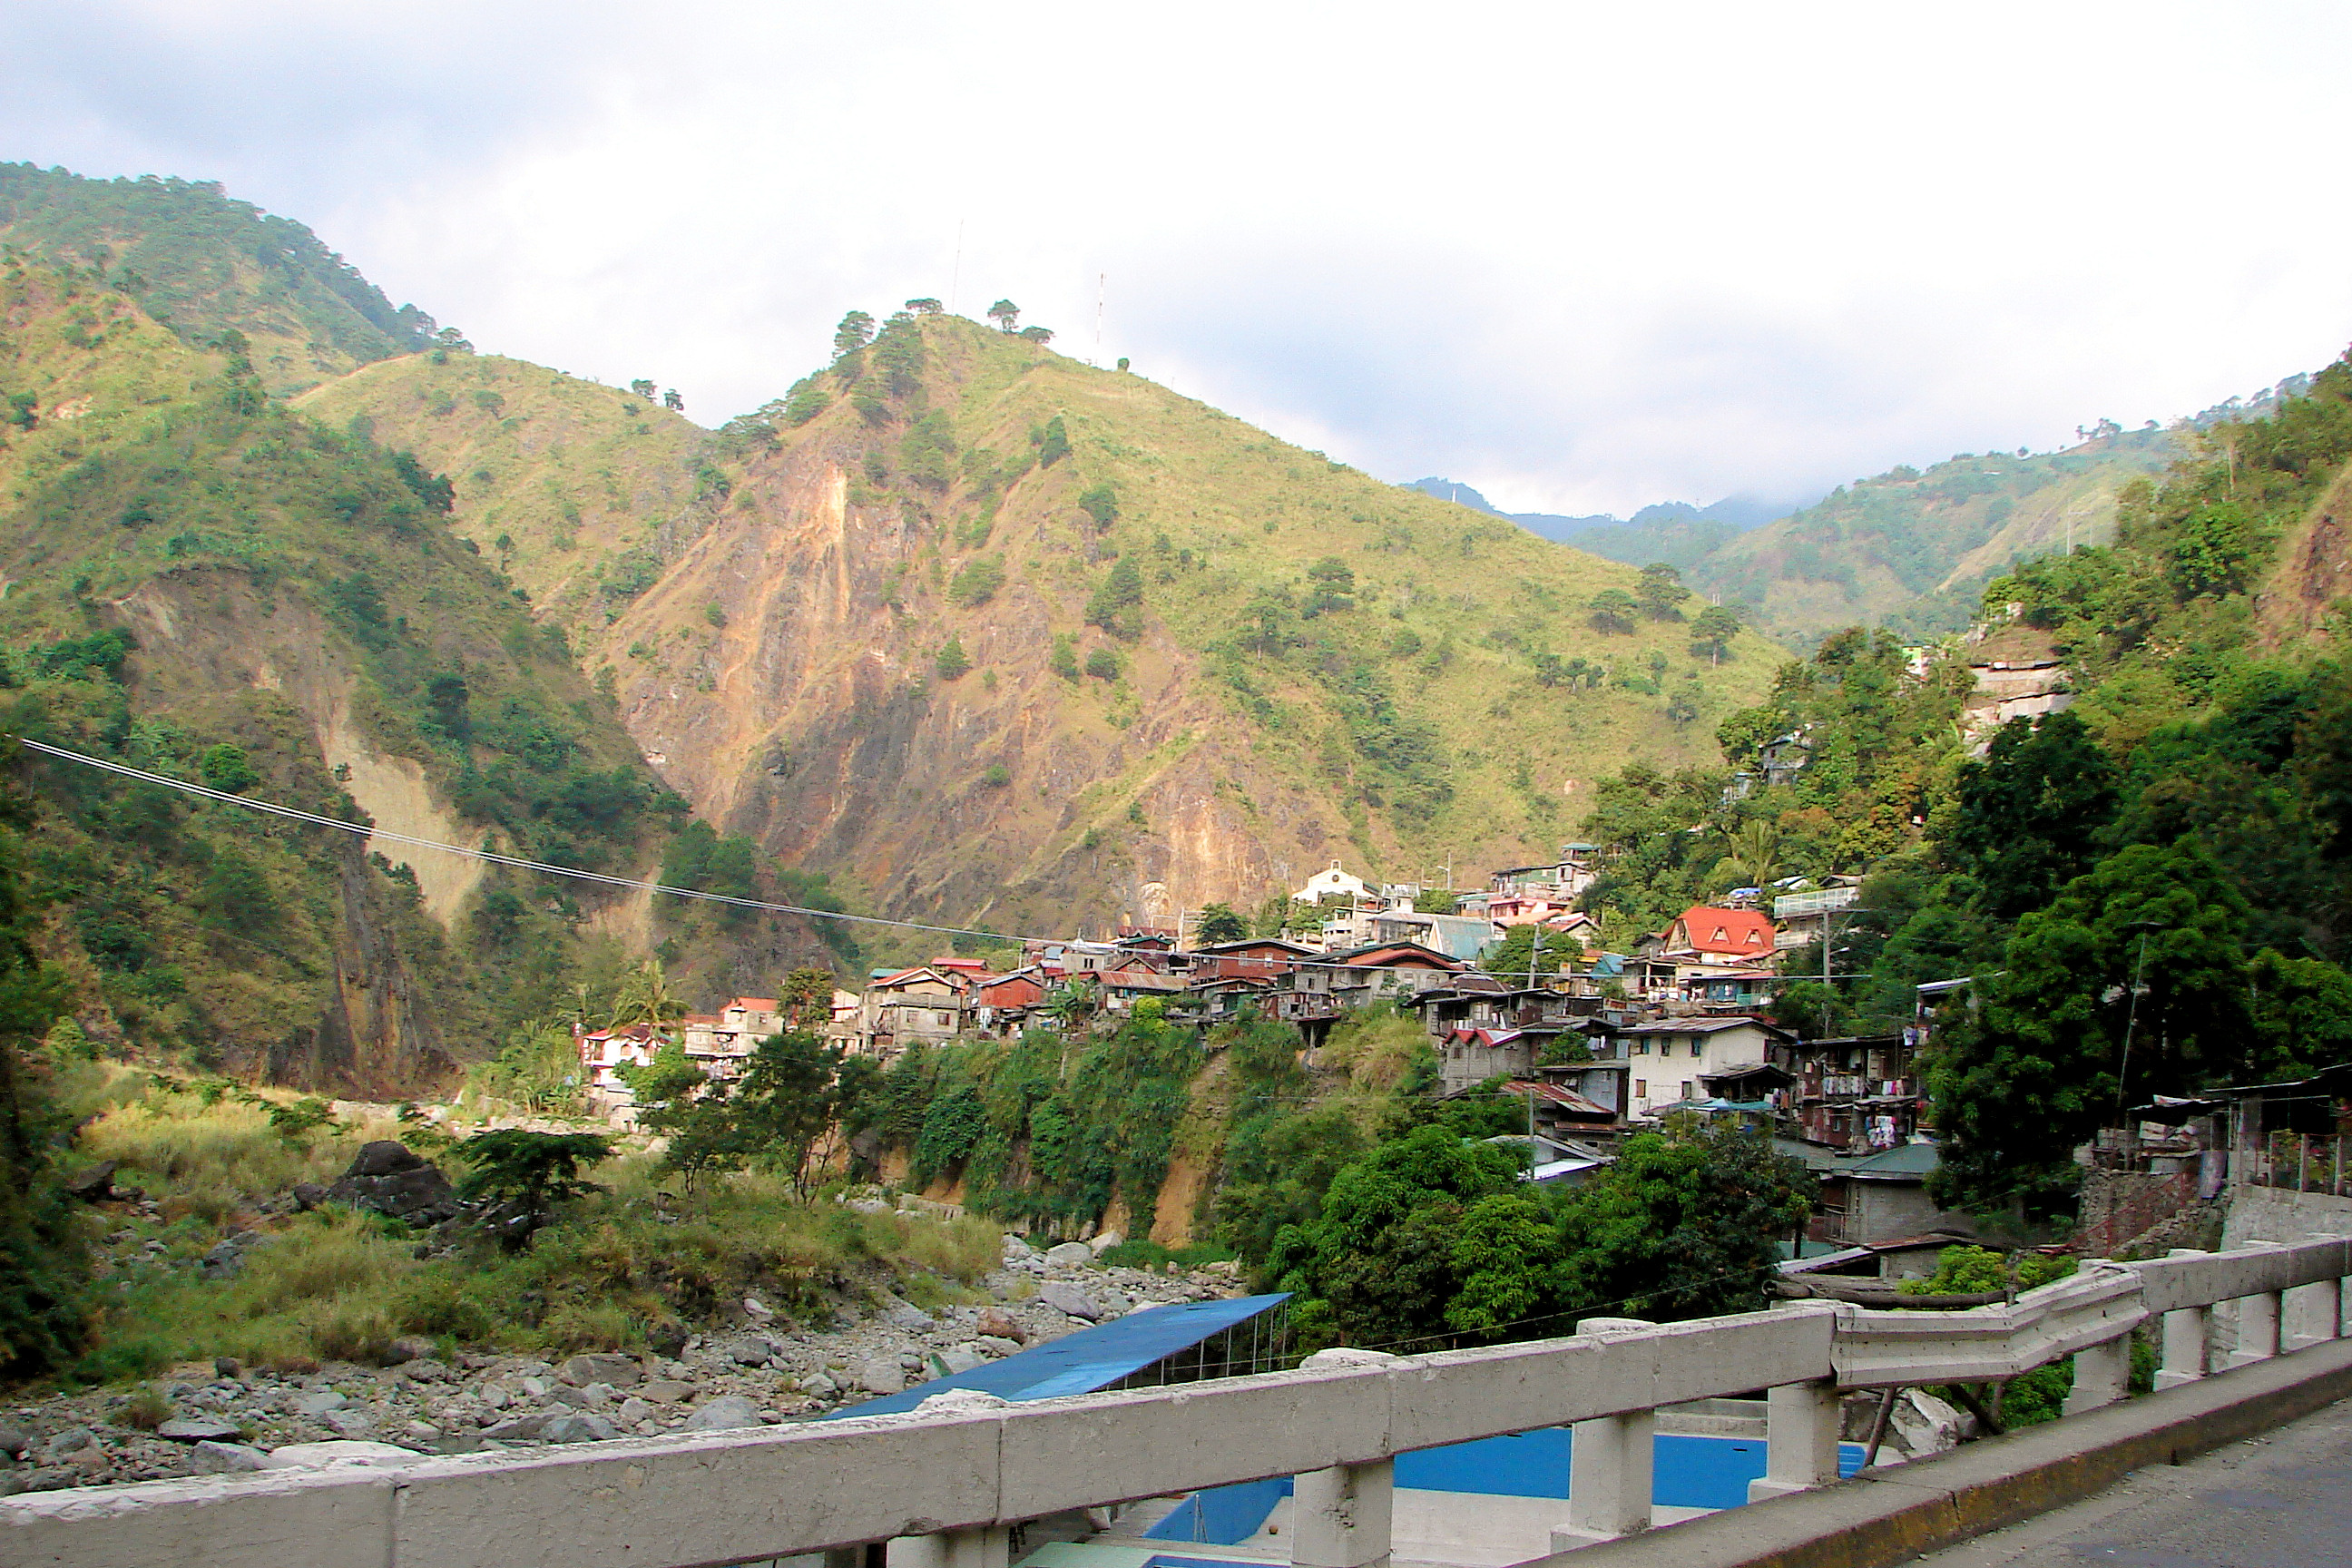 benguet history La trinidad, officially the municipality of la trinidad (ilokano: ili ti la trinidad filipino: bayan ng la trinidad), is a 1st class municipality and capital of the province of benguet, philippines according to the 2015 census, it has a population of 129,133 people.